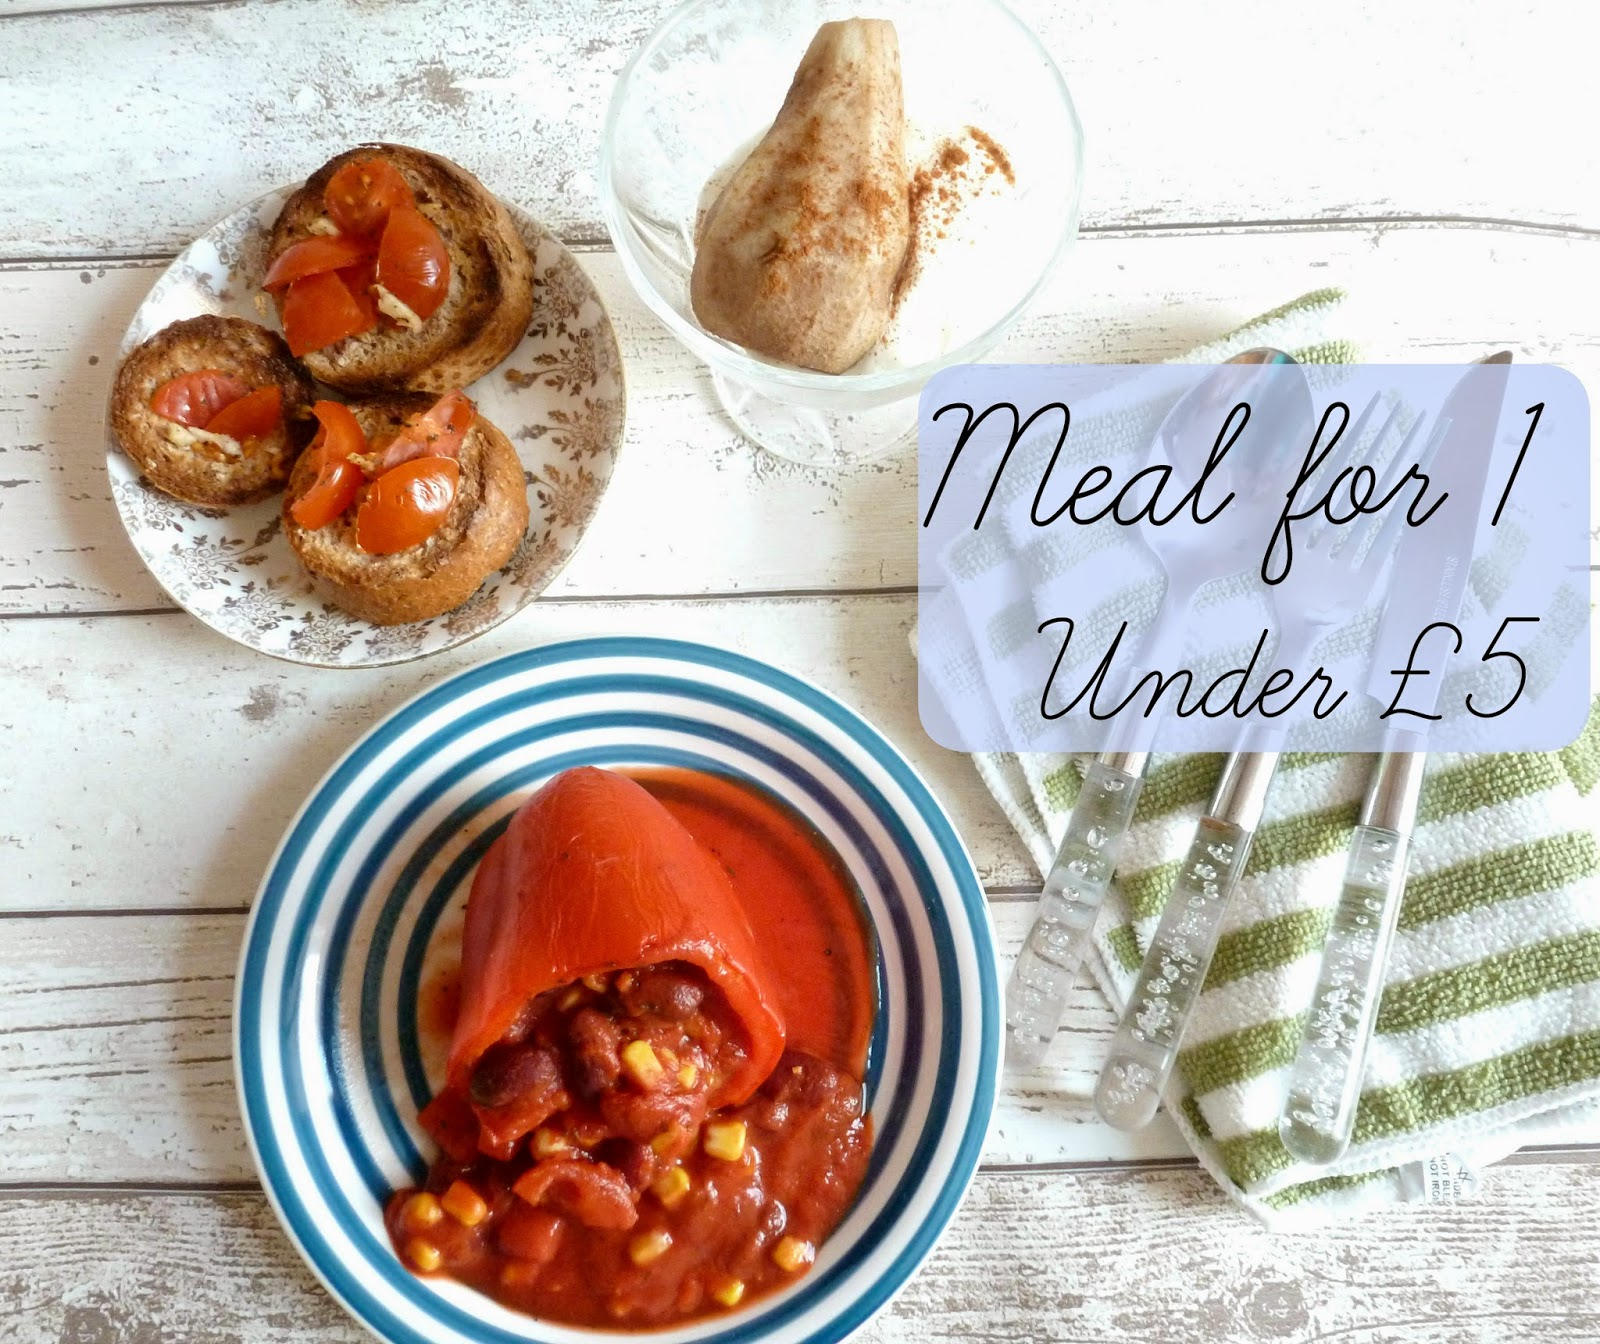 blog post opening image - 3 course meal for 1 under £5